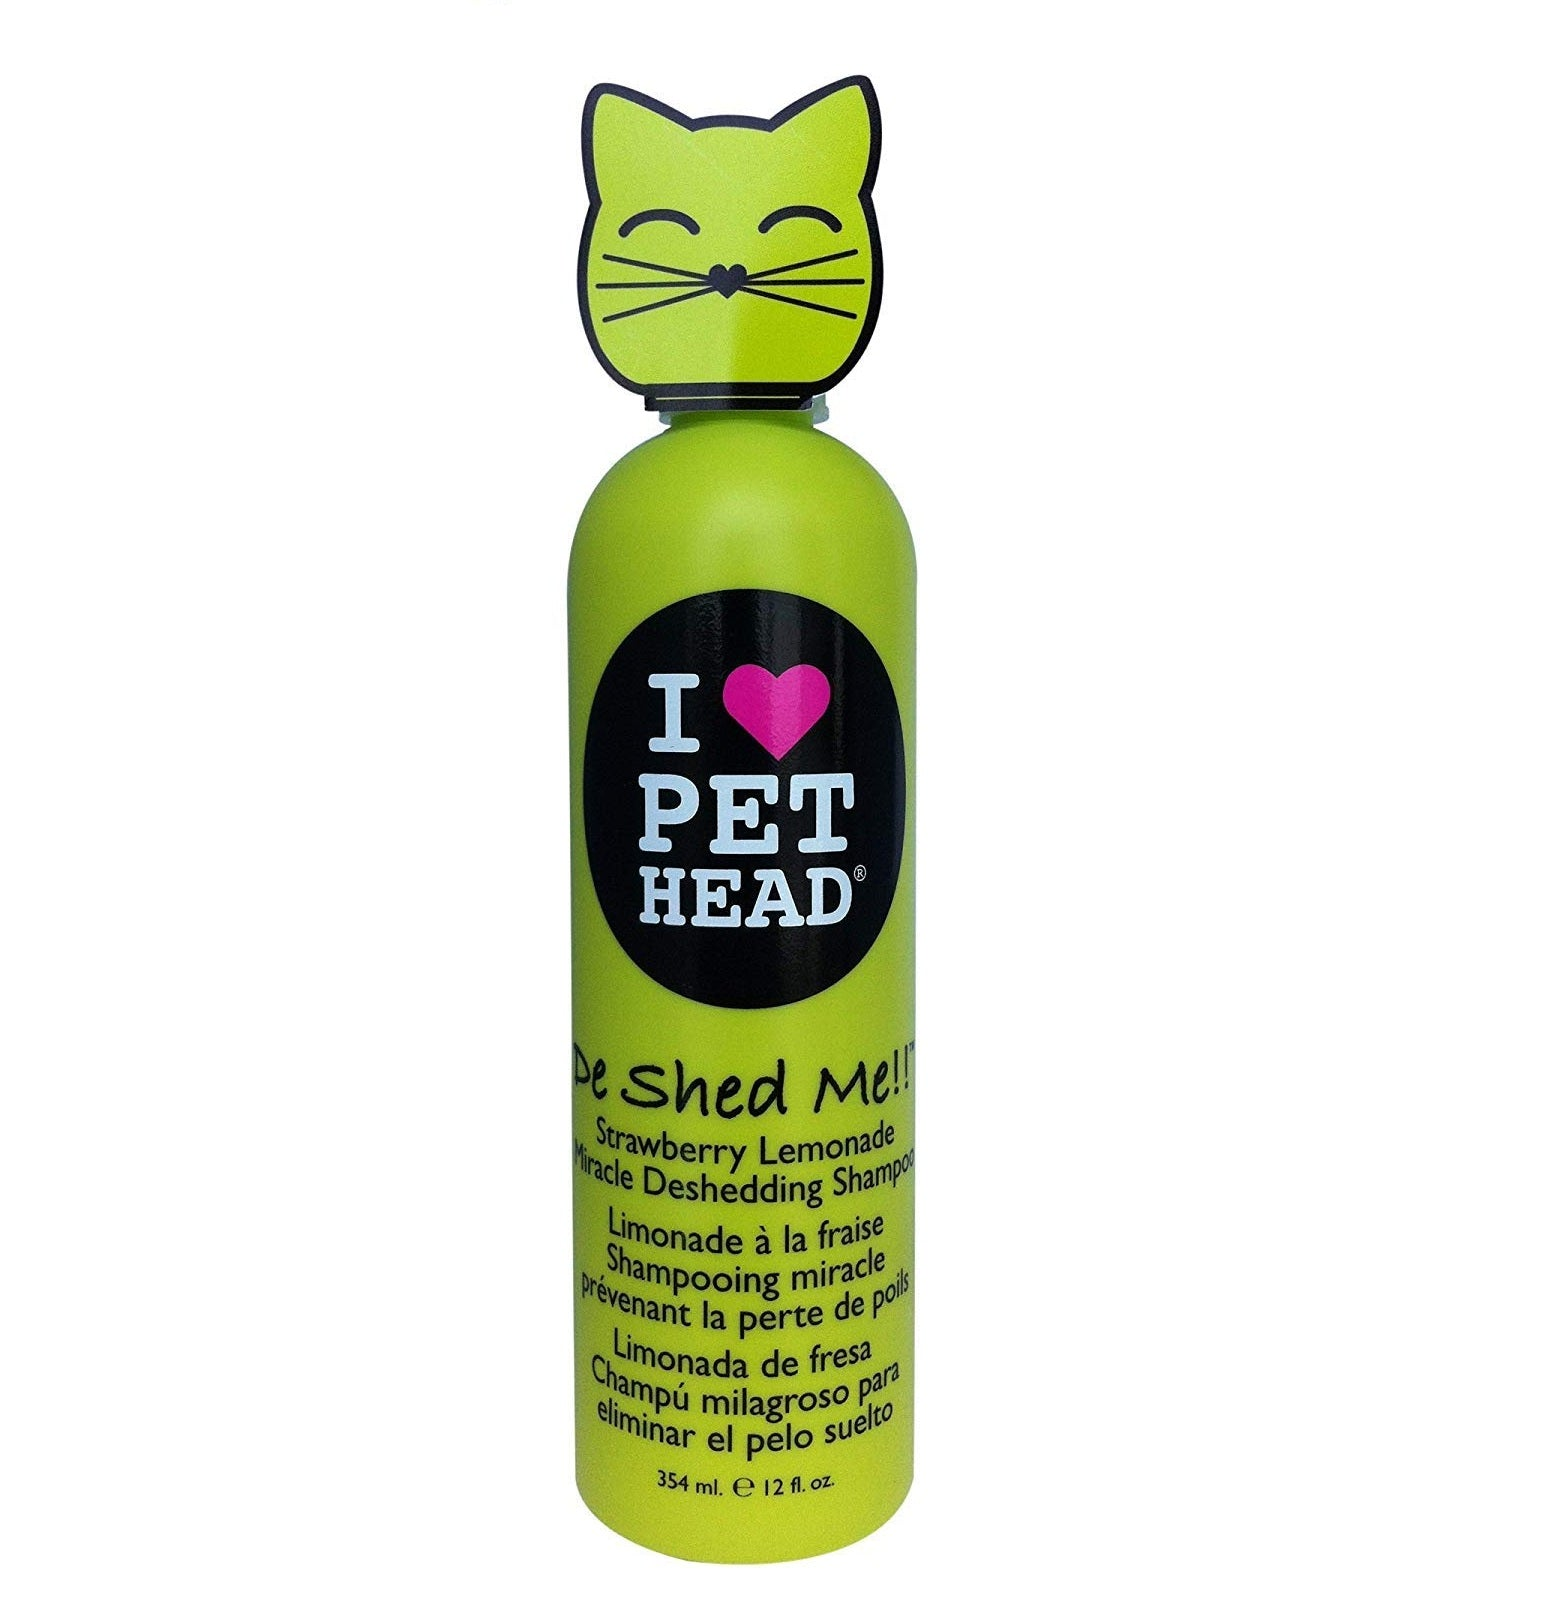 Pet Head De Shed Me Strawberry Lemonade Cat Shampoo 354 ml - pet-club-india